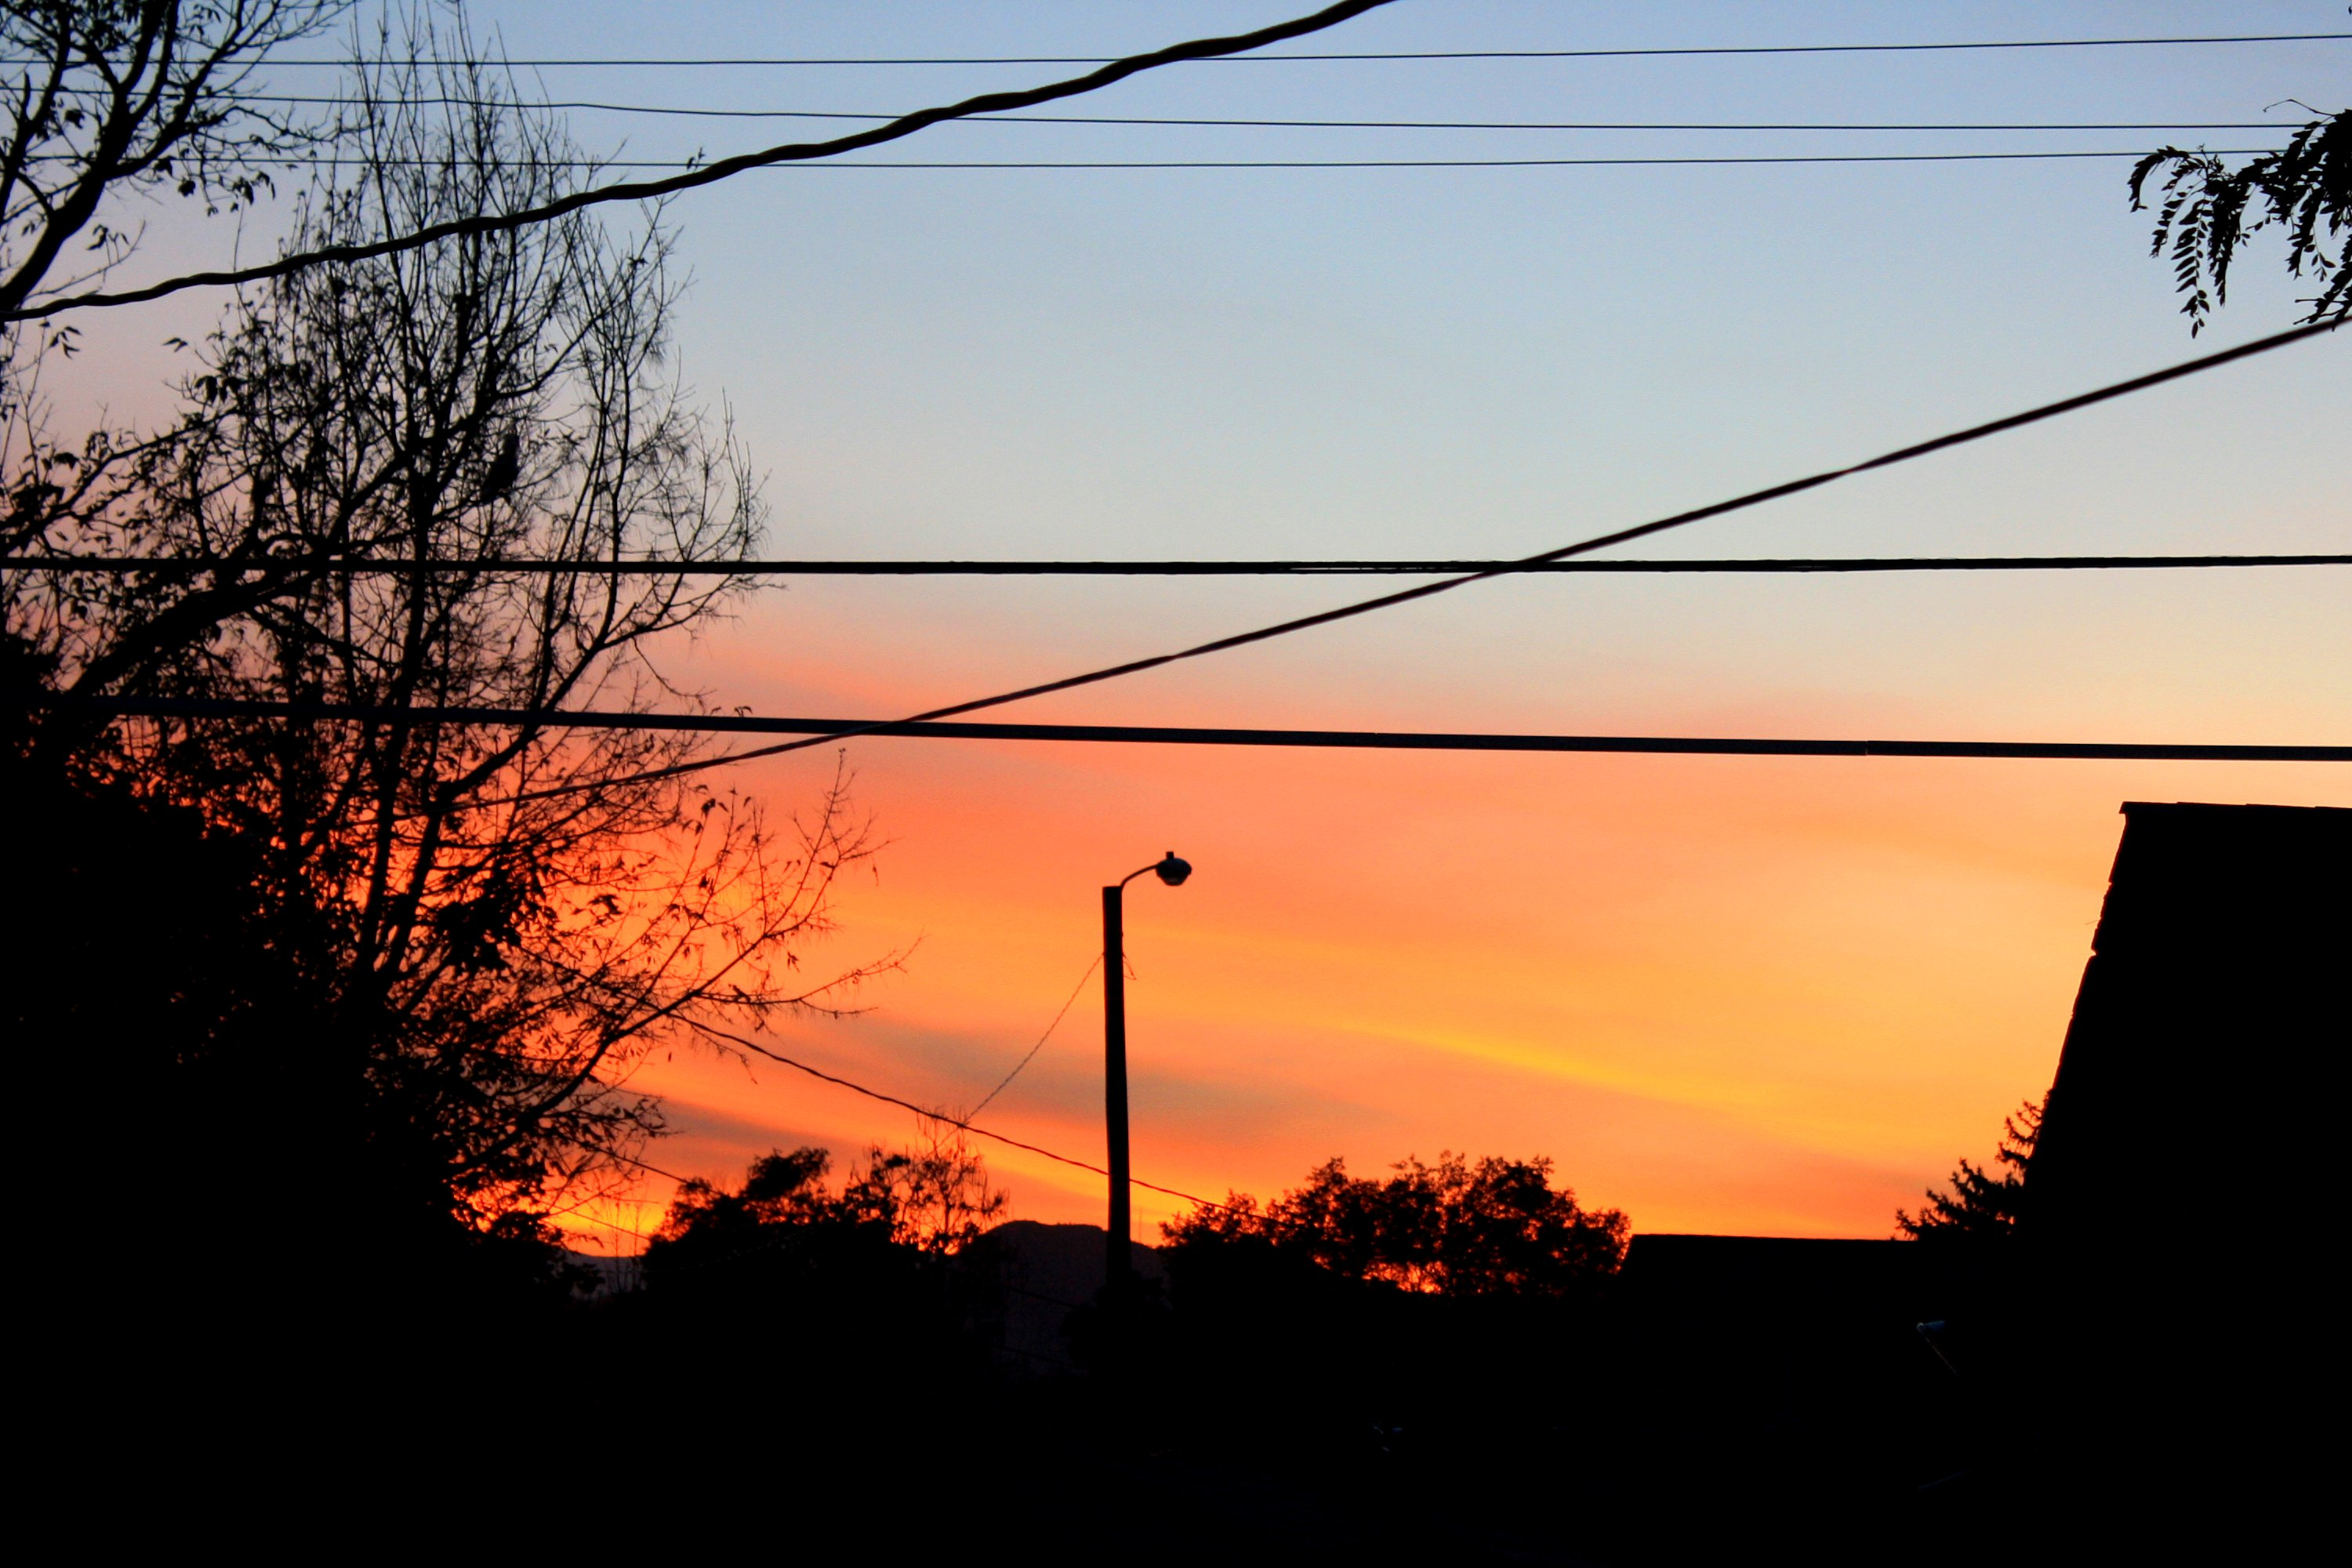 Sunset Seen Through Power Lines Picture | Free Photograph ...